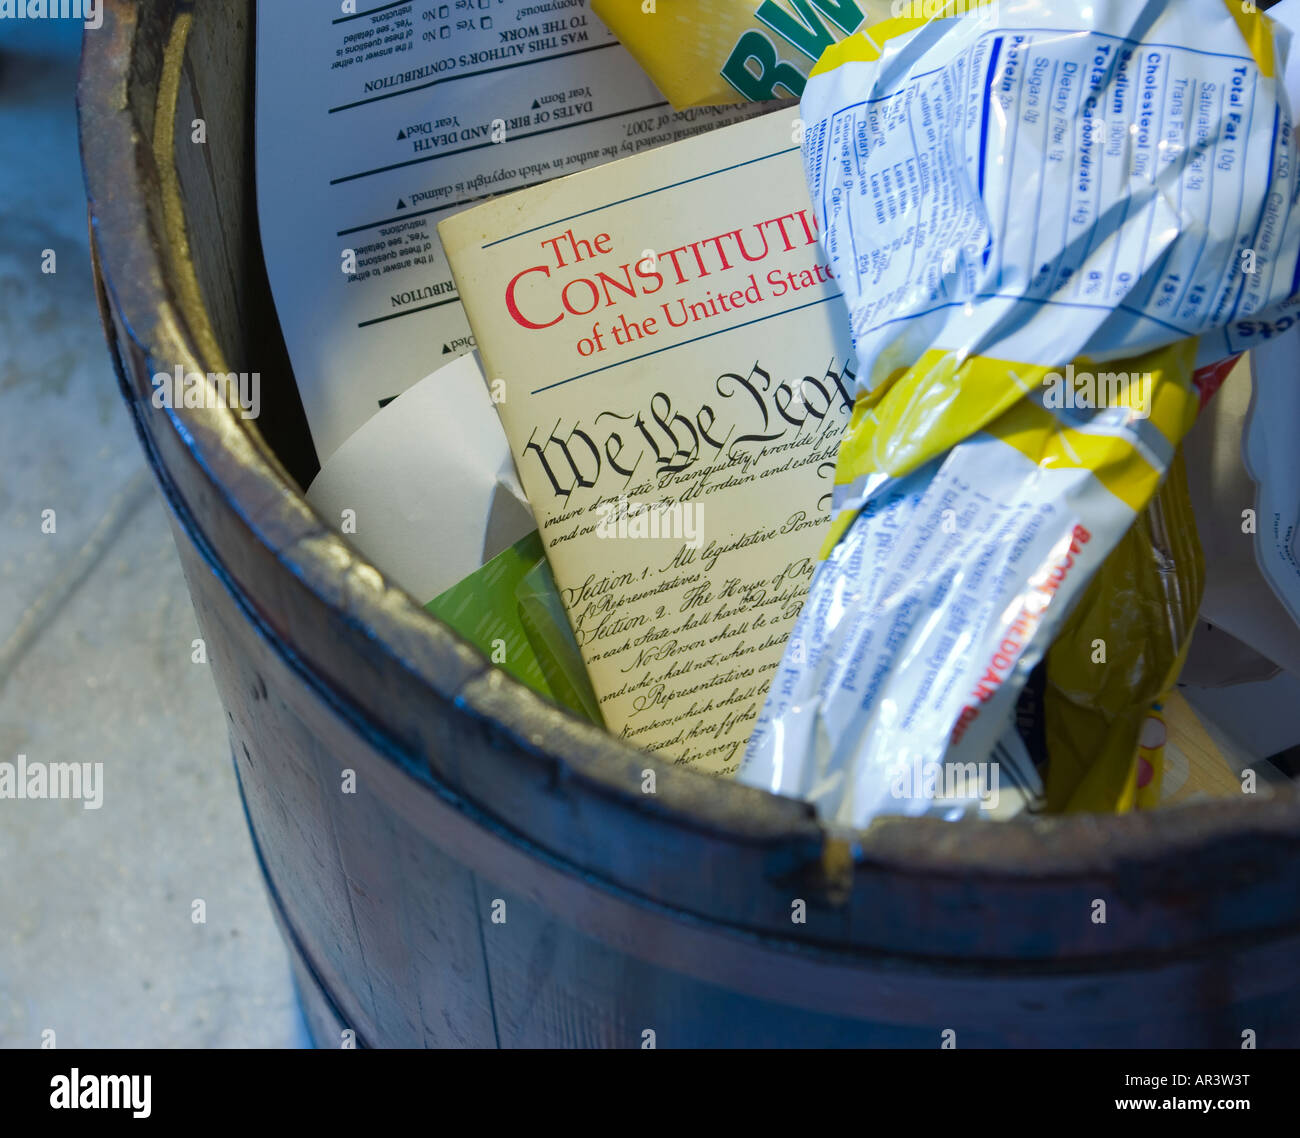 Small copy of U S Constitution shown in wastepaper basket with other refuse - Stock Image